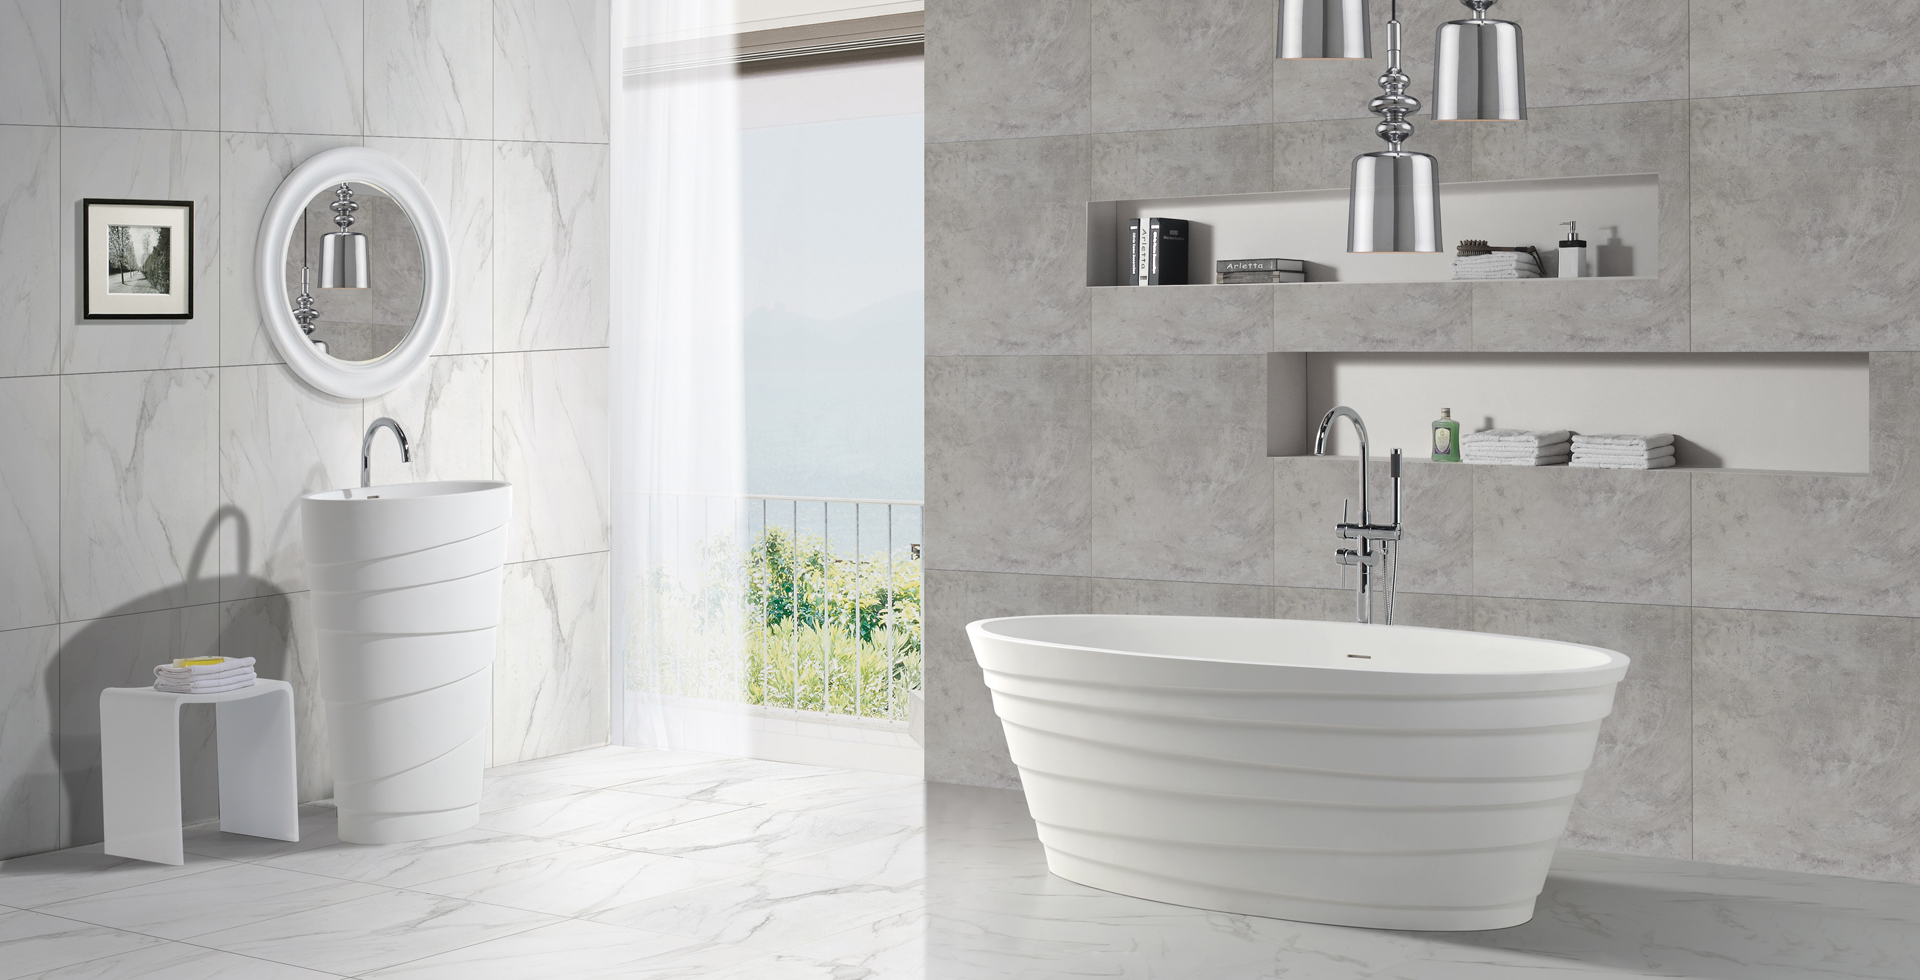 Modern Bathroom Vanities, Cabinets & Faucets | Bathroom ...